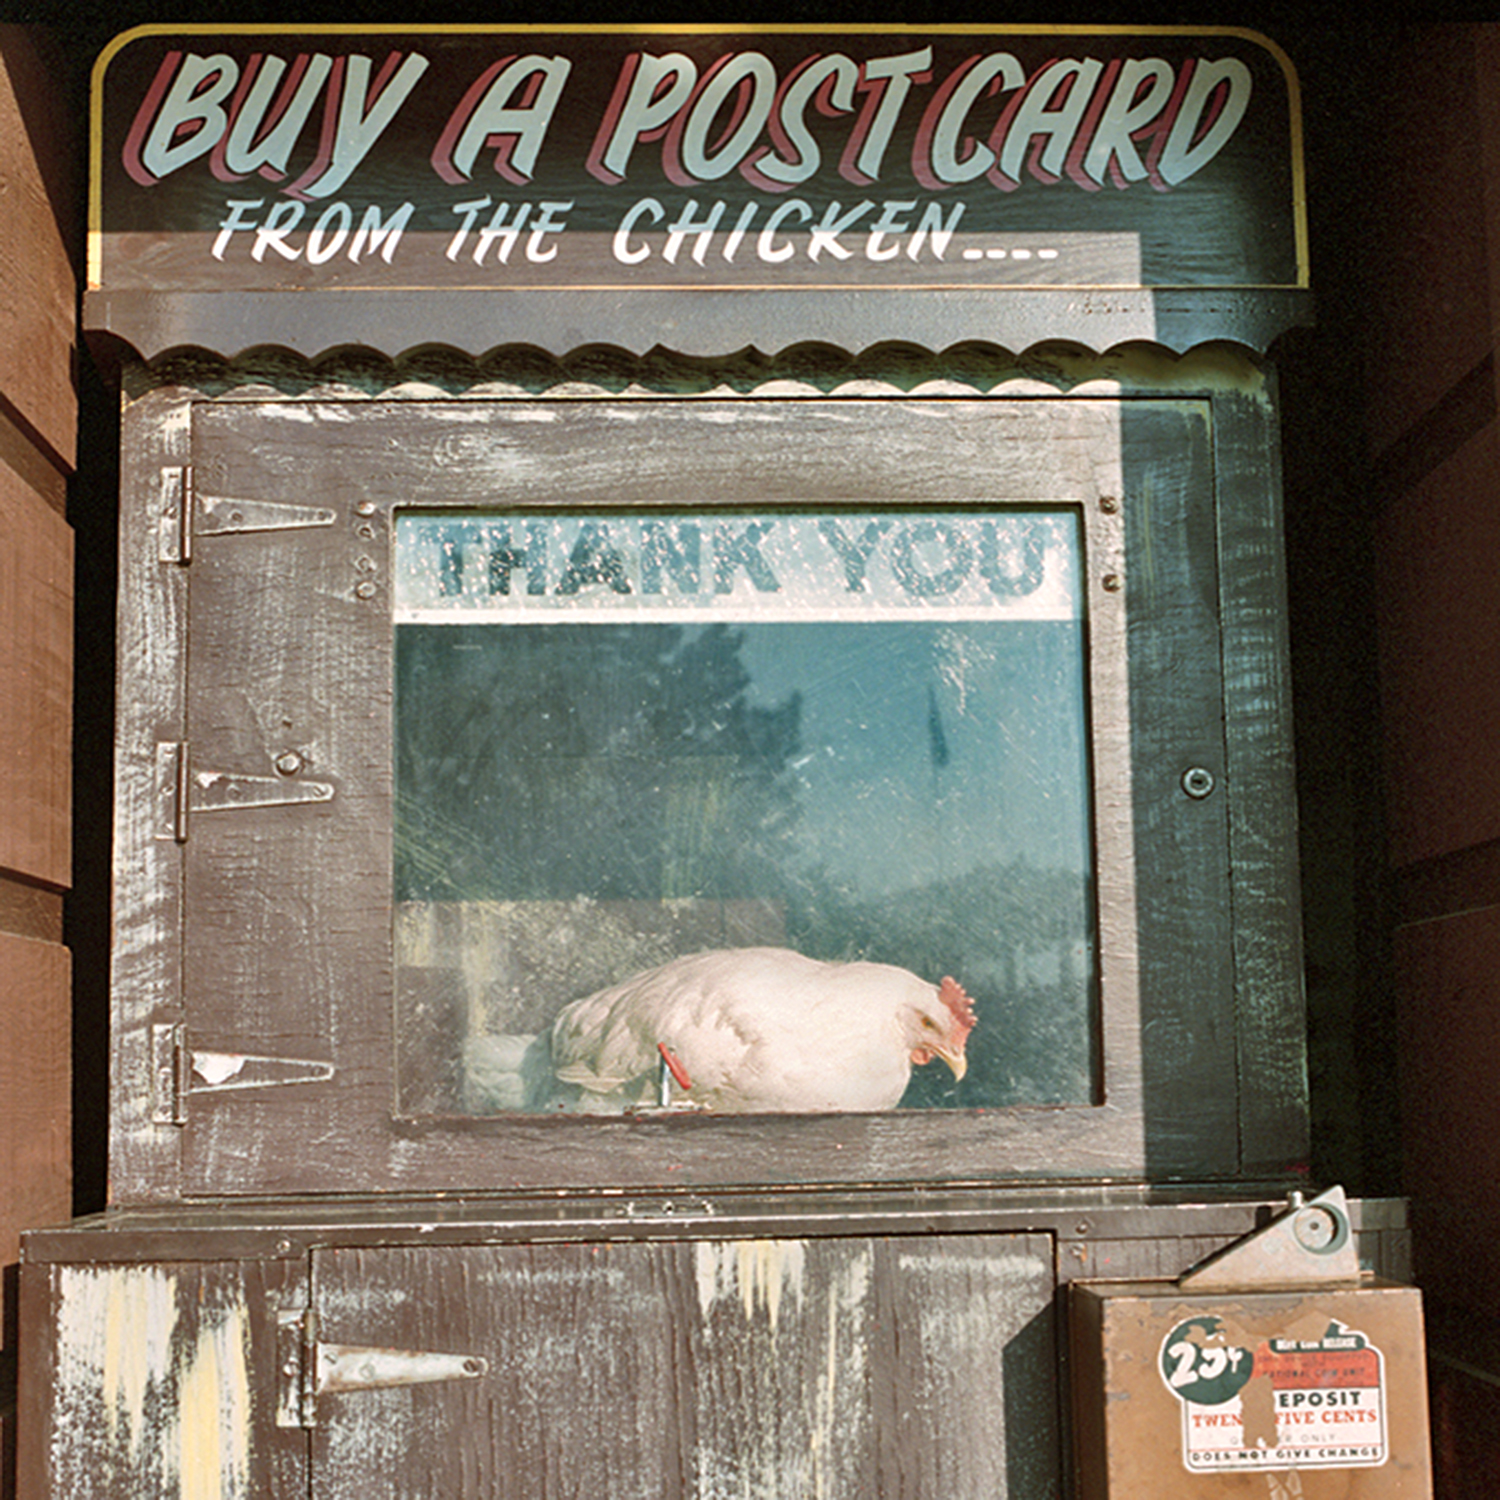 Paul Bunyan Land, Brainerd, Minnesota. August 1989. Amusement park next to the Paul Bunyan Motel that also included a colossal Paul Bunyan automaton that frightened children by recognizing them by name in a booming voice as they approached. This chicken is eyeing a food trough in line of sight with the coin drop; when I put in a quarter, the chicken pulls a lever that simultaneously releases food... and a postcard.